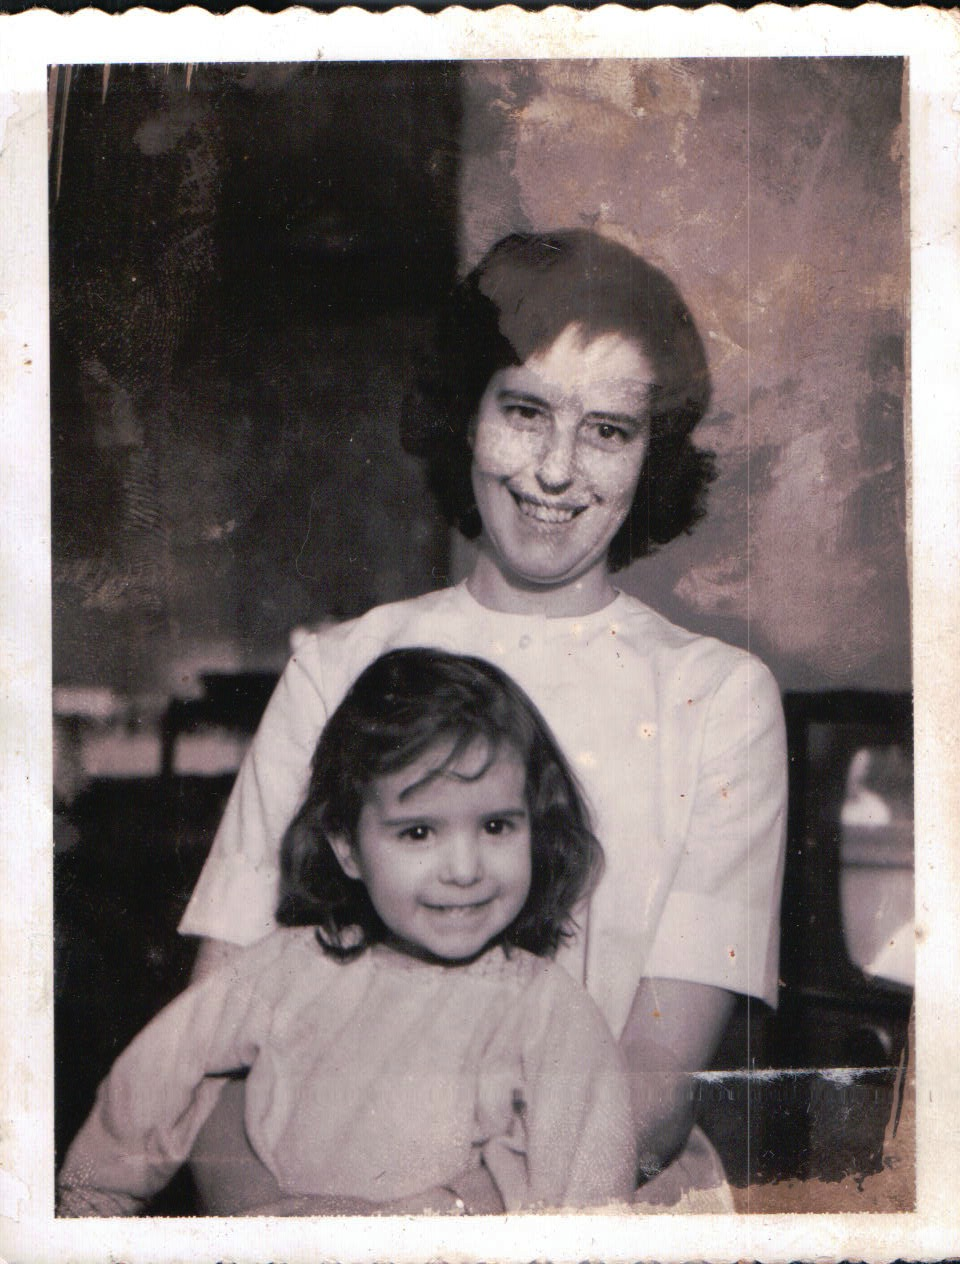 1962 - Virginia and her daughter, Sharon